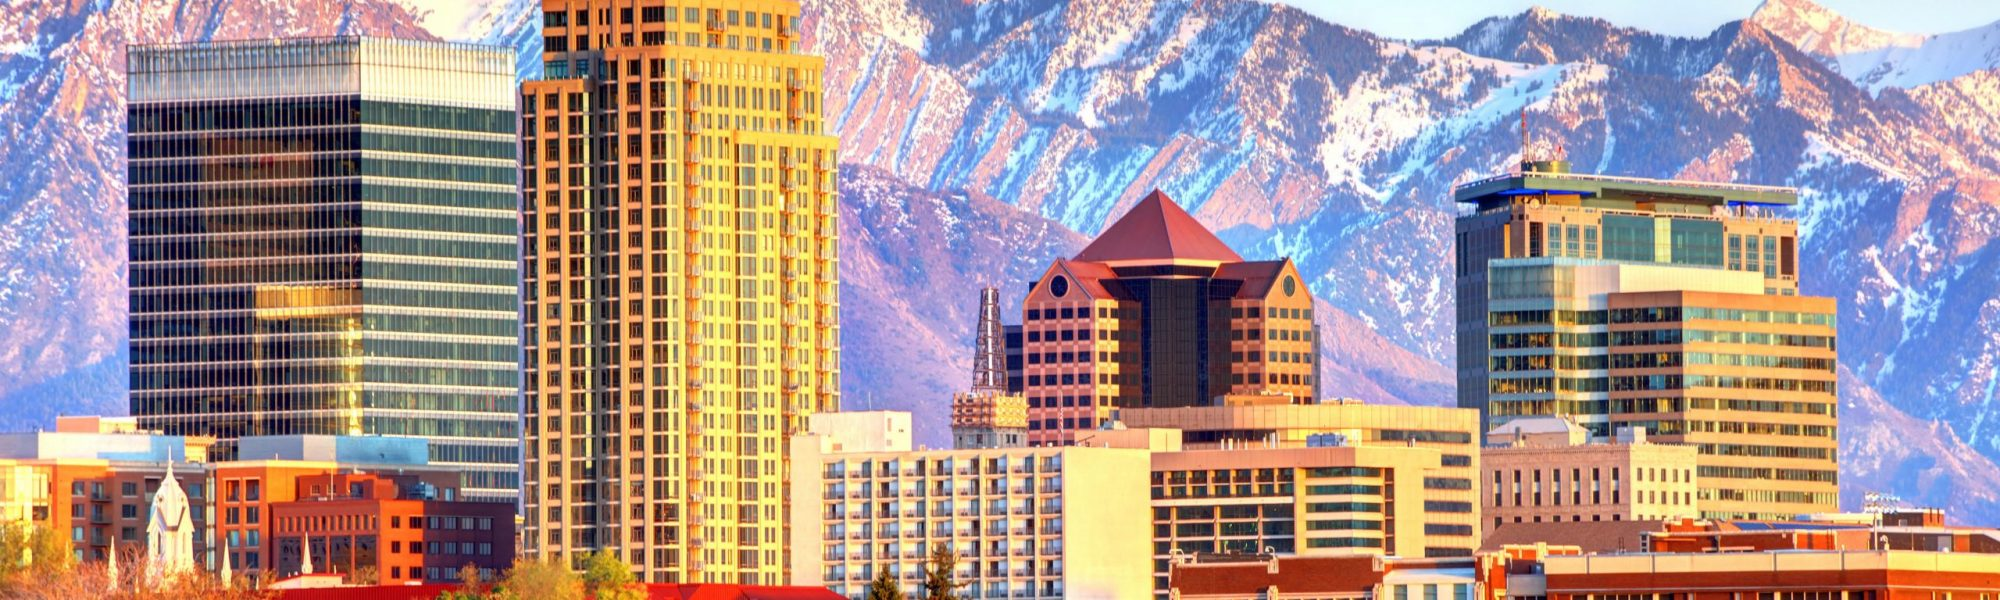 Salt Lake City is the capital and the most populous municipality of the U.S. state of Utah